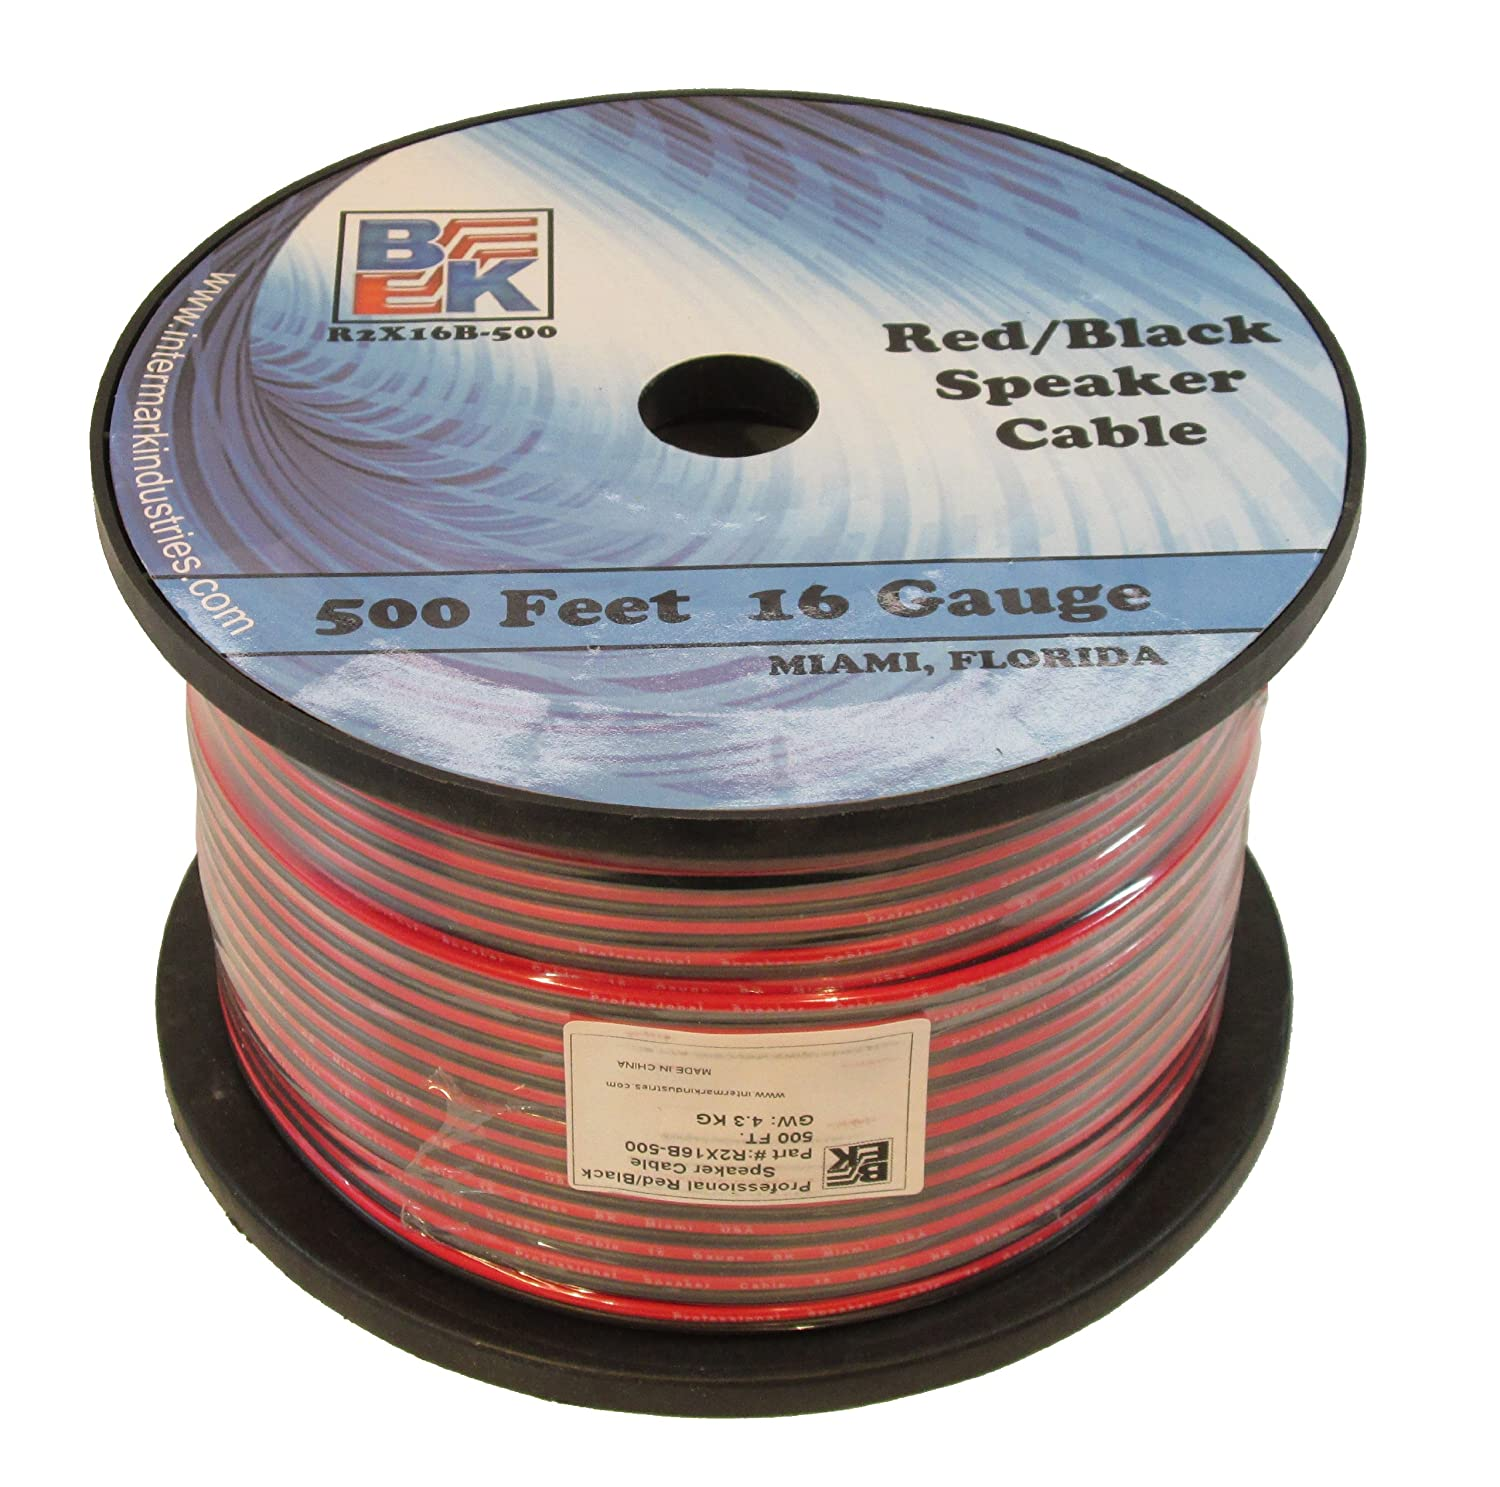 Blast King IR2X16B 16 Gauge Speaker Wire, 500-Feet BlastKing IR2X16B-500